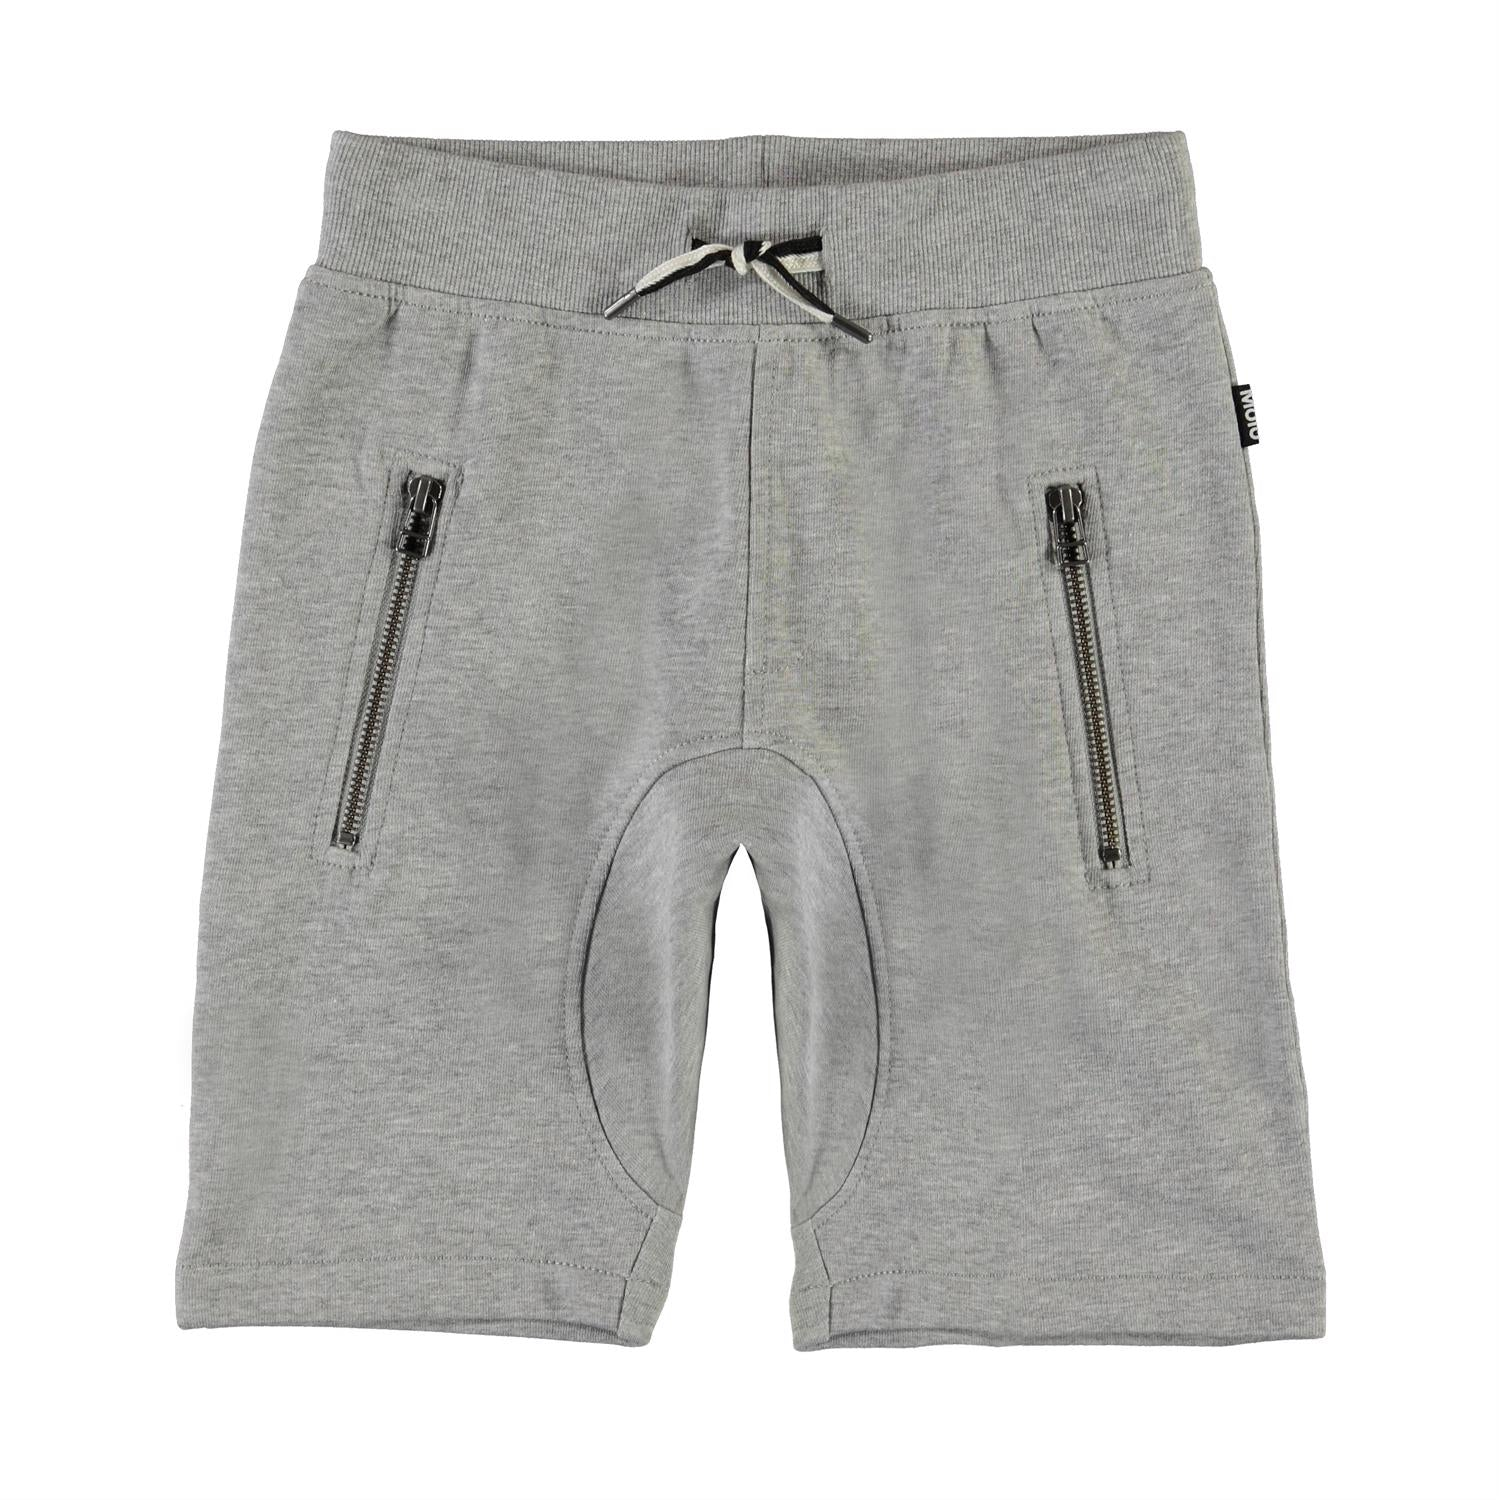 MOLO - Shorts Sweat Ashton Grey Melange